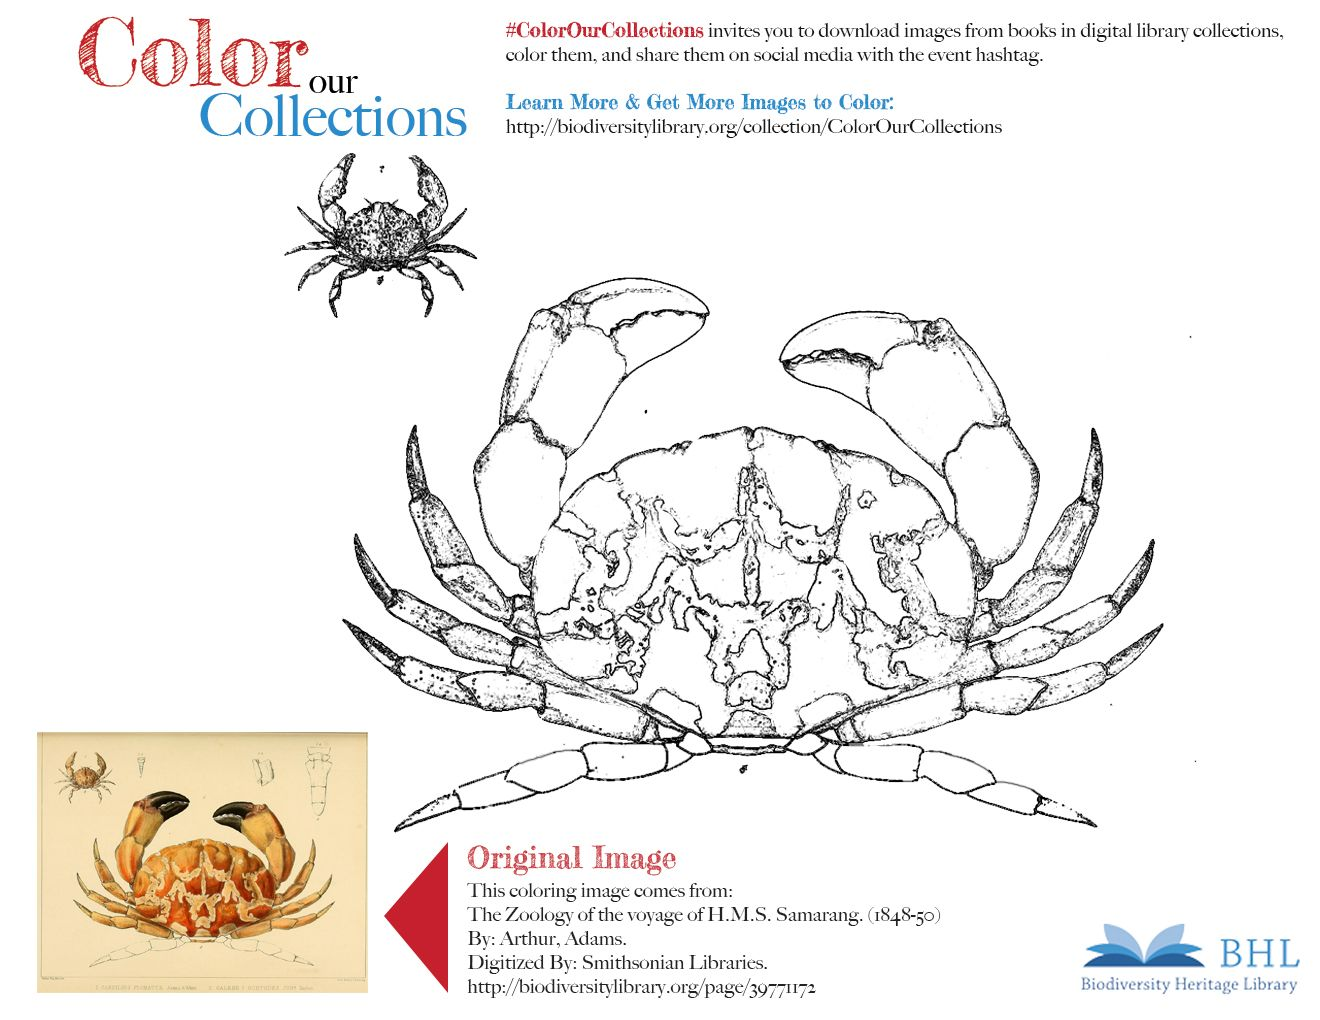 Colorourcollections Original Image Http Biodiversitylibrary Org Page 39771172 To Download This Image Right Click On Coloring Pages Color Coloring Books